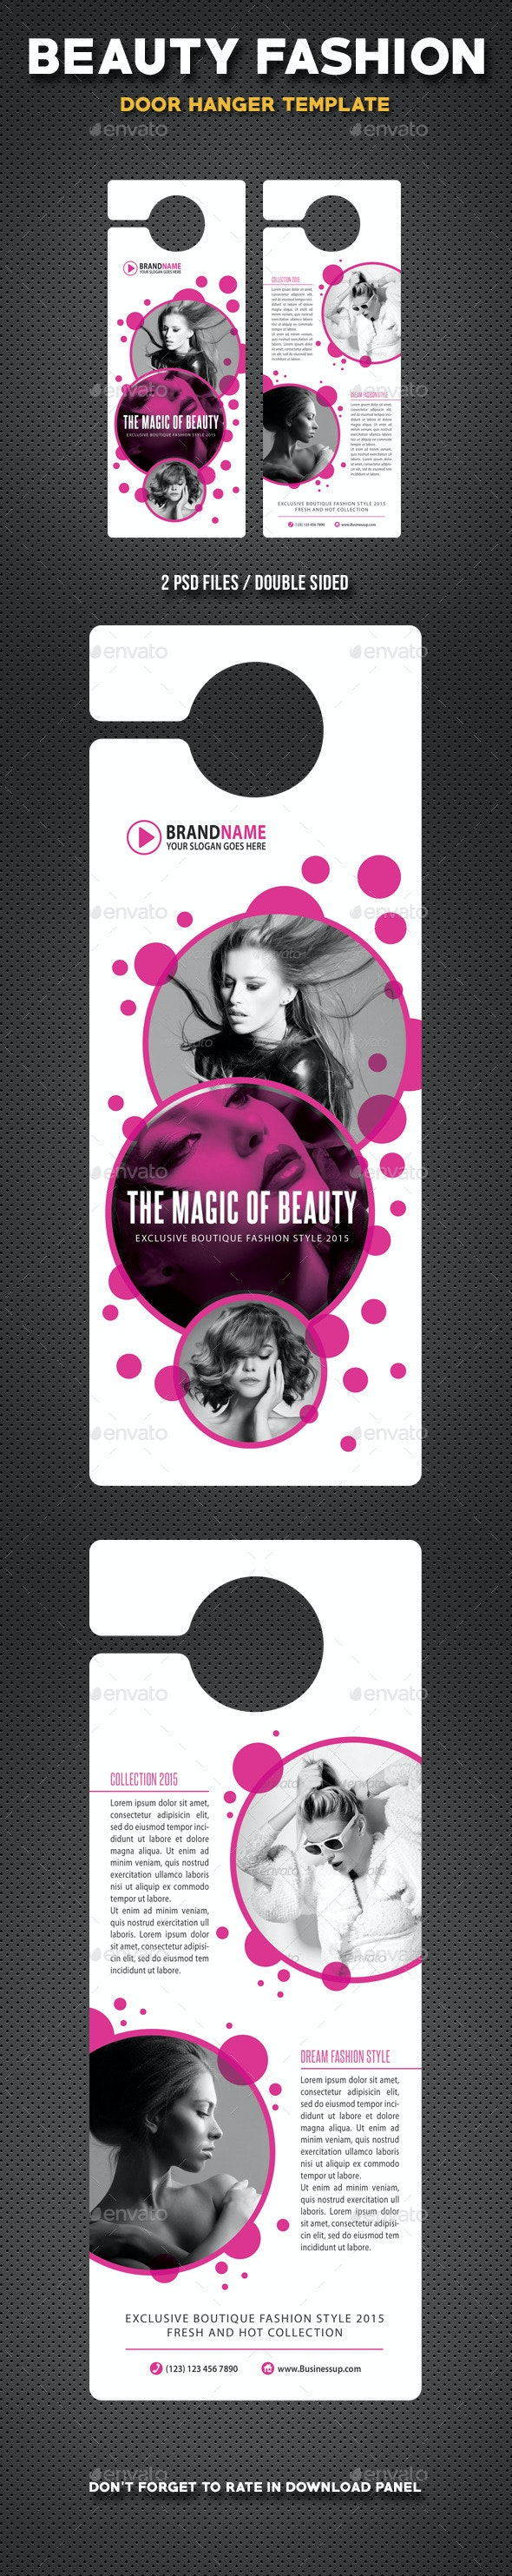 Beauty Fashion Door Hanger V1 - Miscellaneous Print Templates